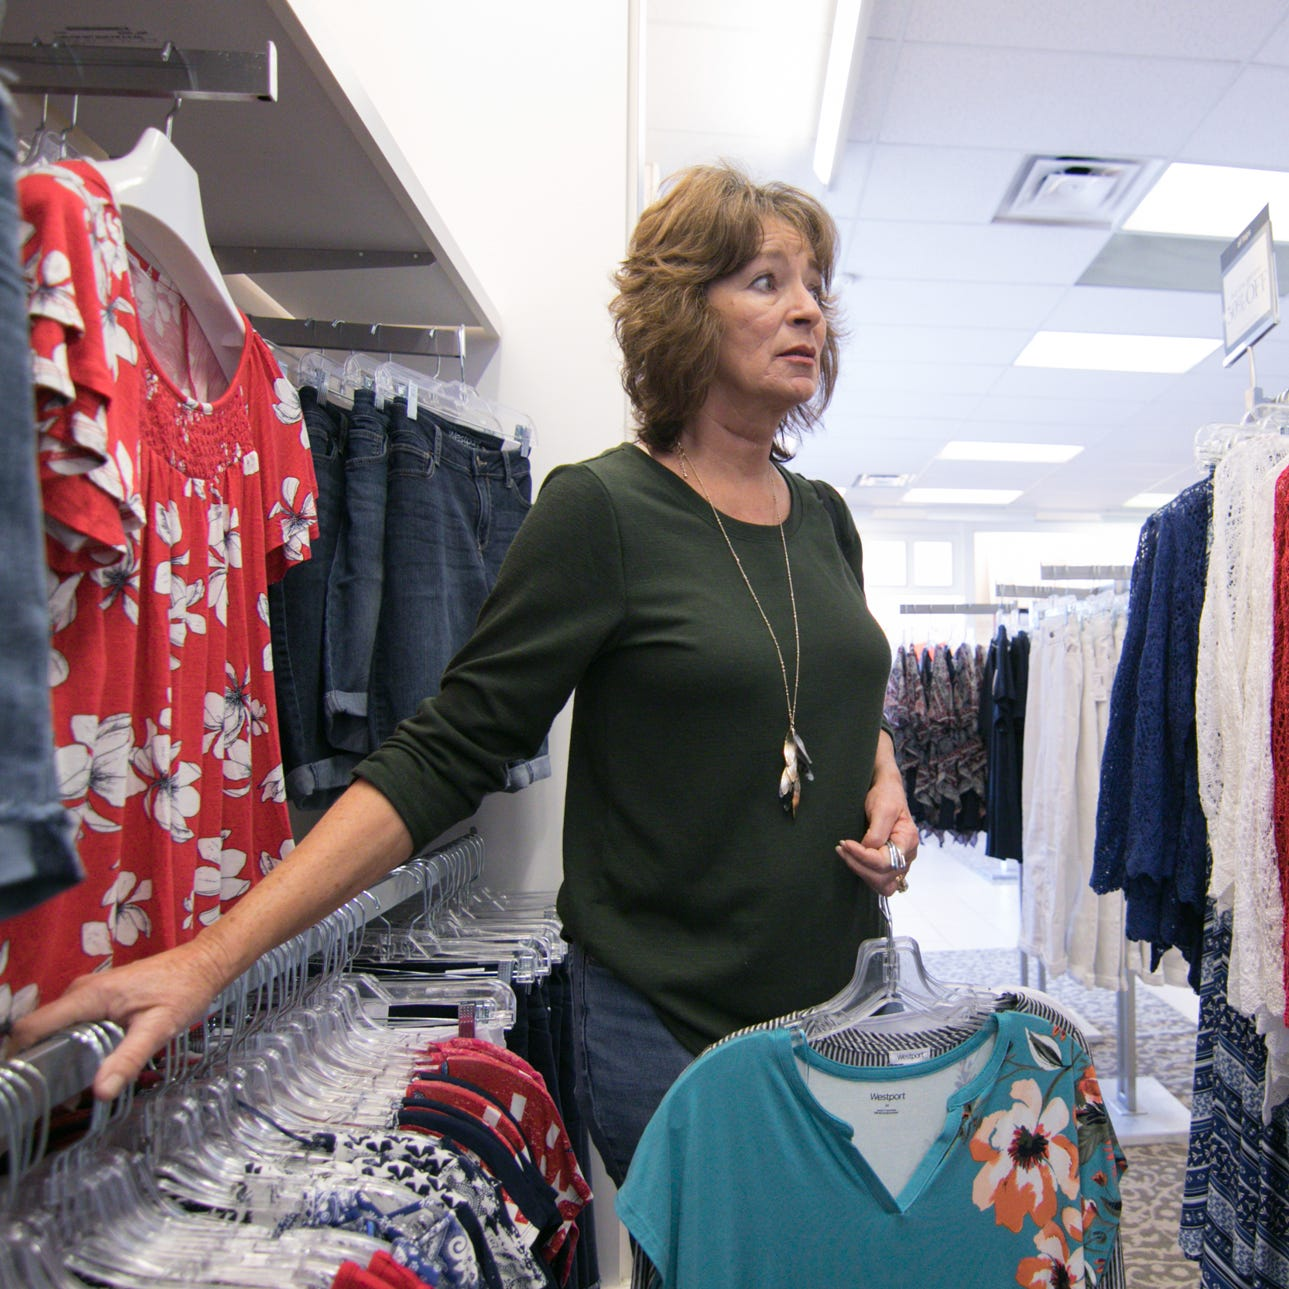 2 national women's clothing store locations to close in Livingston County